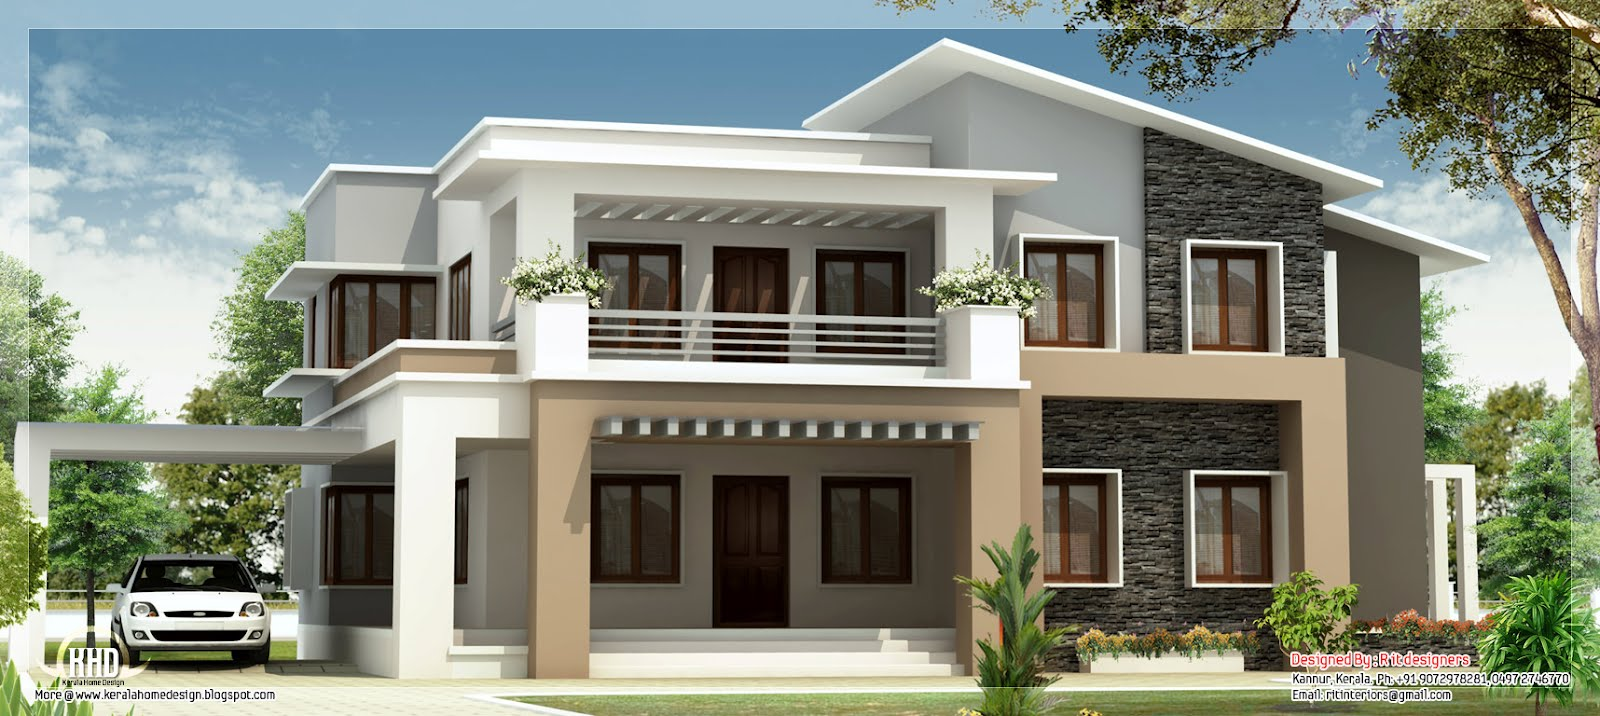 Modern mix double floor home design kerala home design Modern double storey house plans